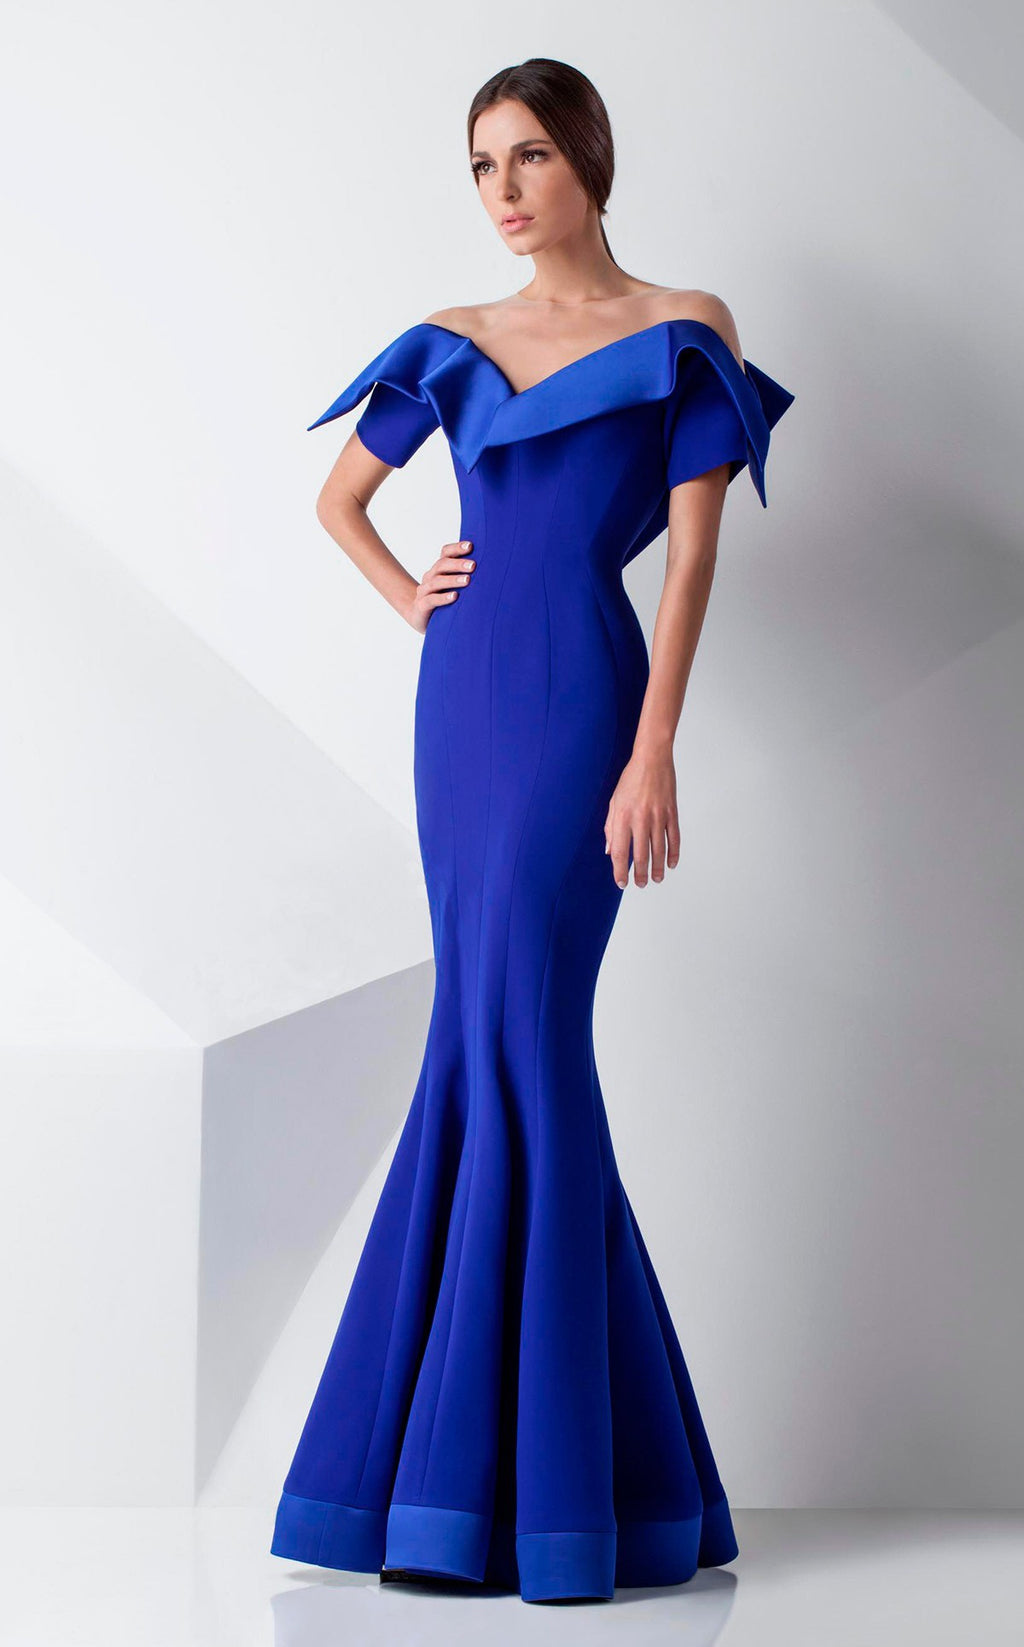 MNM Couture G0782 Mermaid Evening Dress